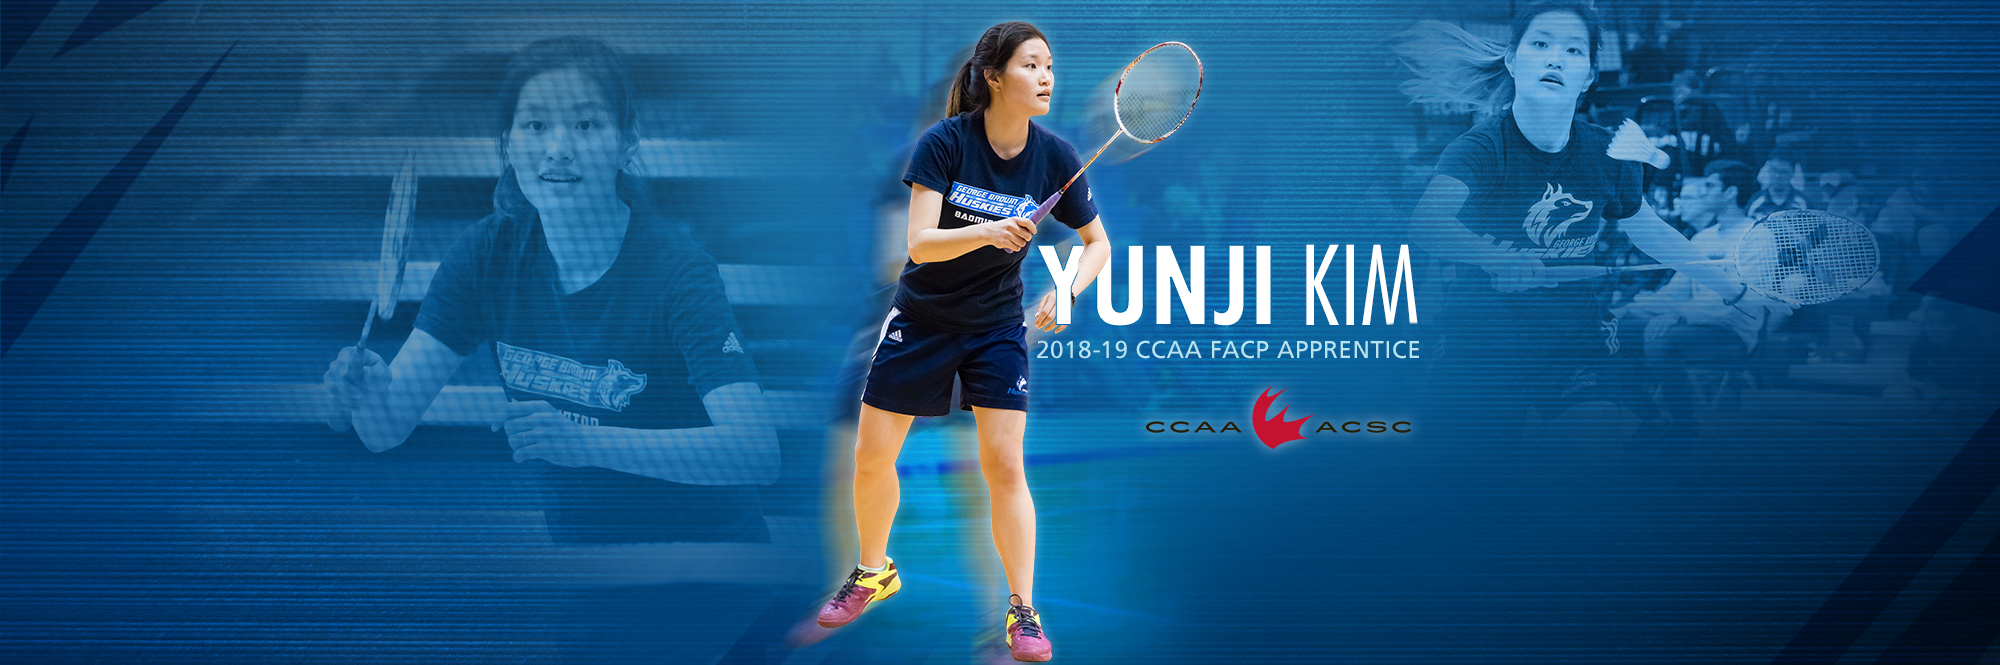 GEORGE BROWN'S YUNJI KIM AMONG 2018-19 CCAA FEMALE APPRENTICE COACHING PROGRAM MEMBERS